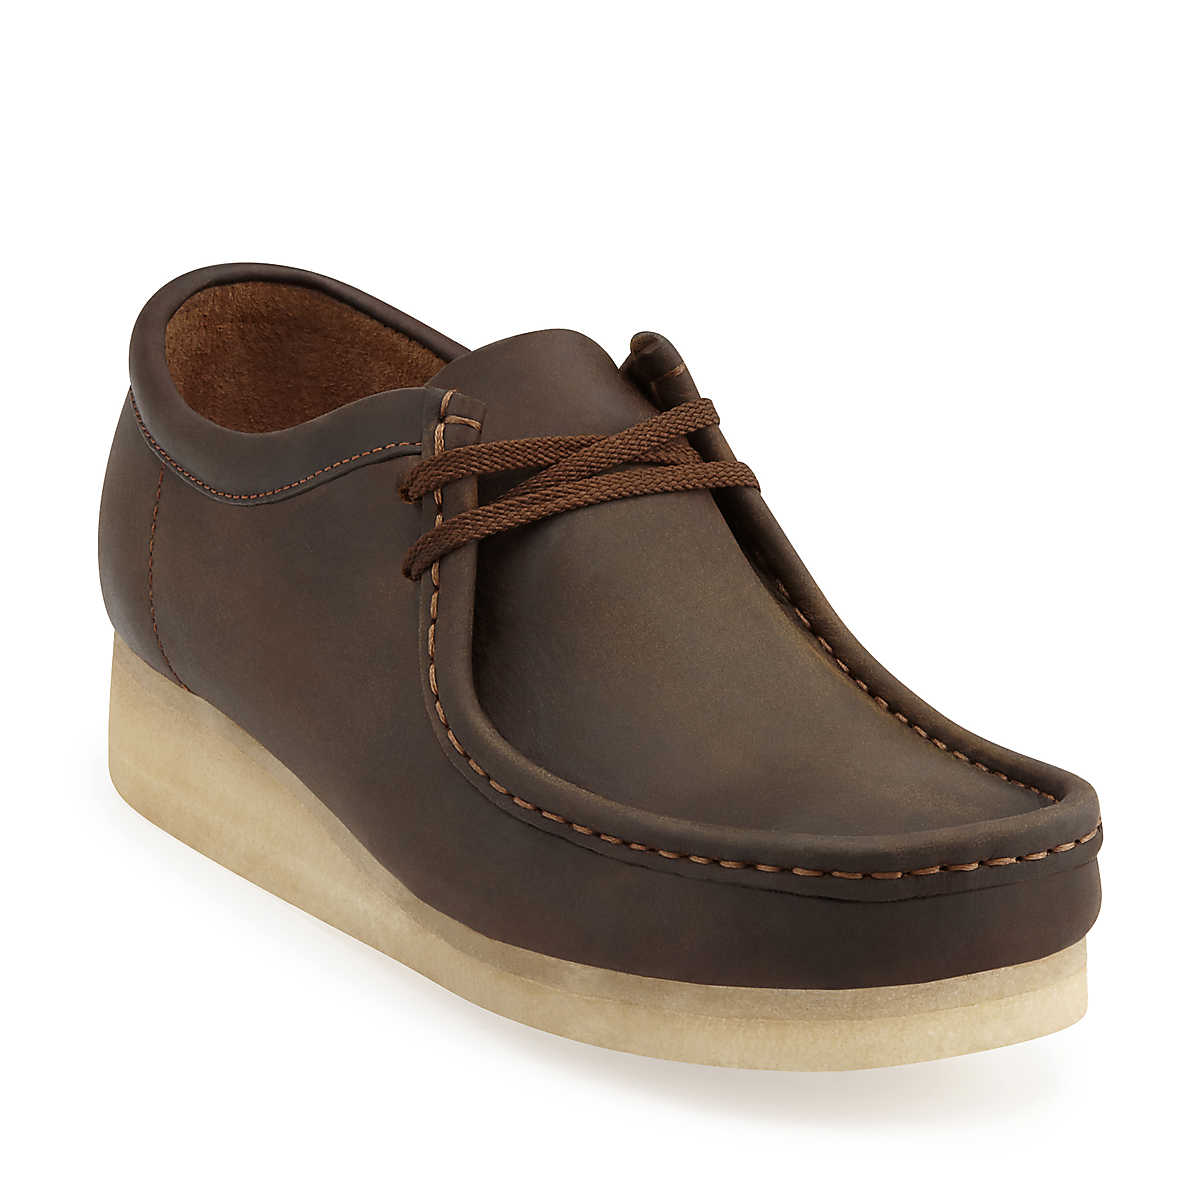 Preorder Clarks Wallabee Beeswax Leather Low 37989